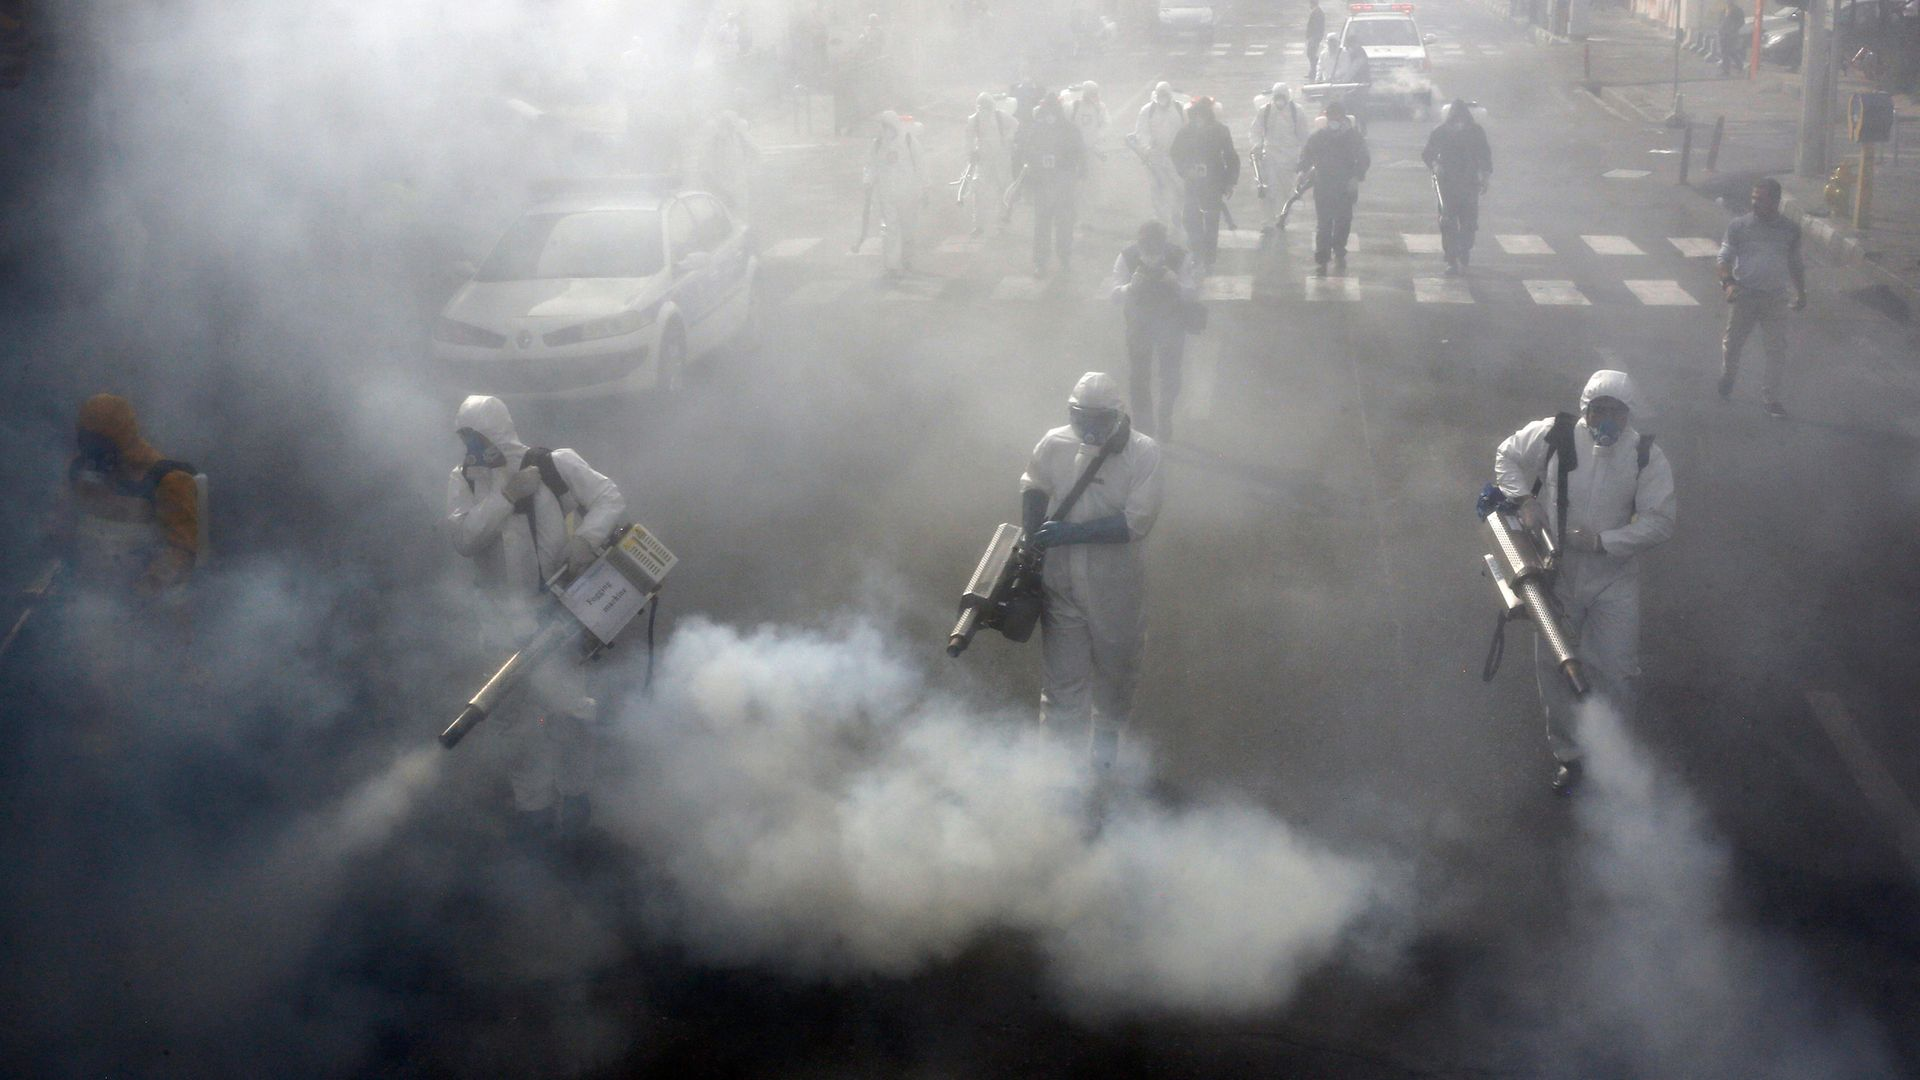 Iranian Firefighters disinfect streets in Tehran in a bid to halt the spread of coronavirus in March 2020 - Credit: AFP via Getty Images